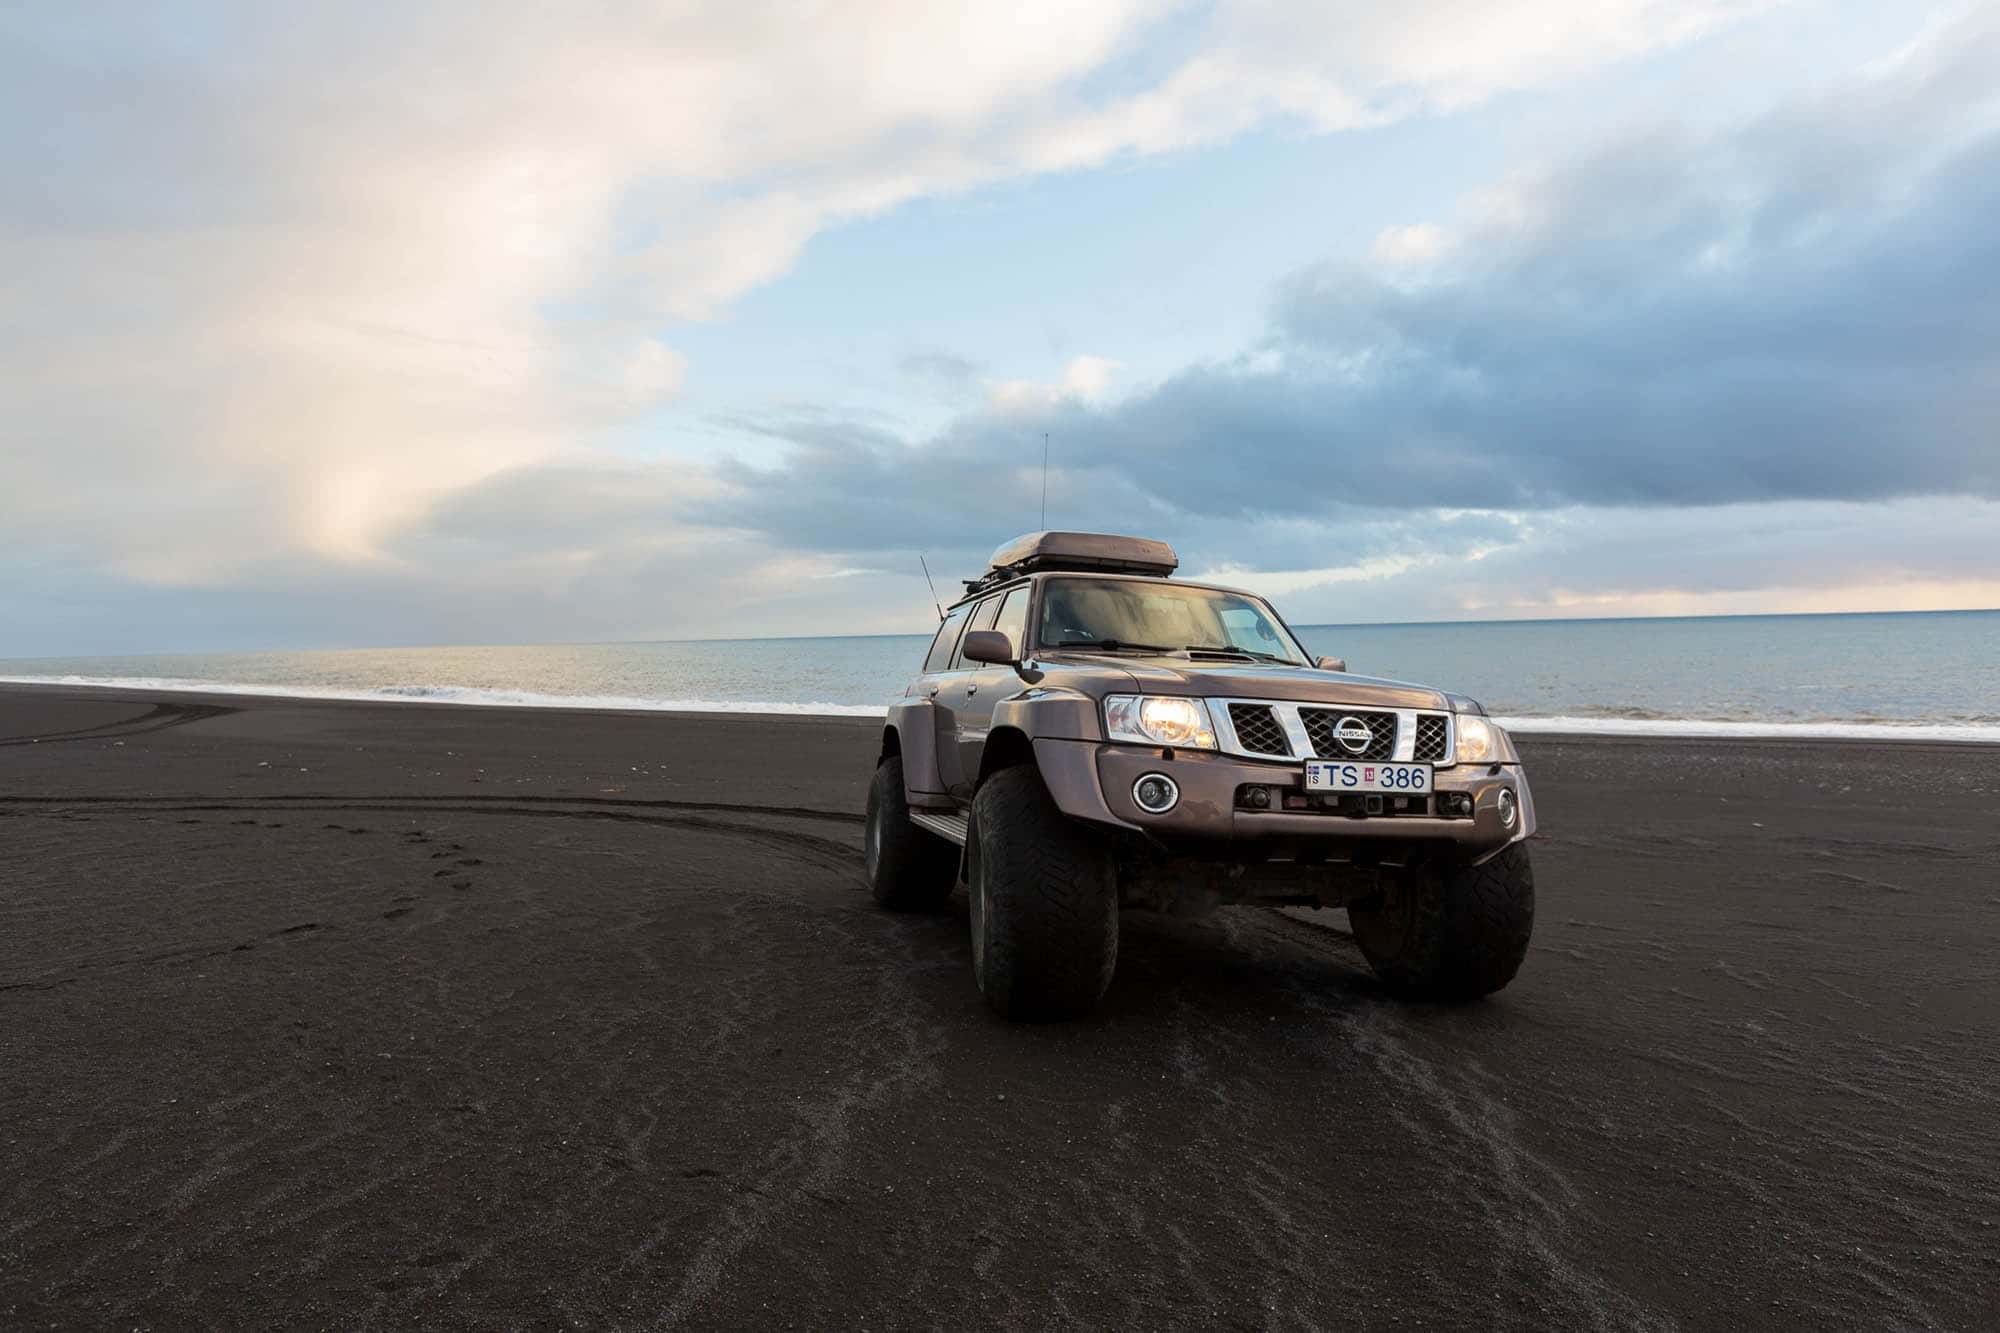 south coast day tour by super jeep